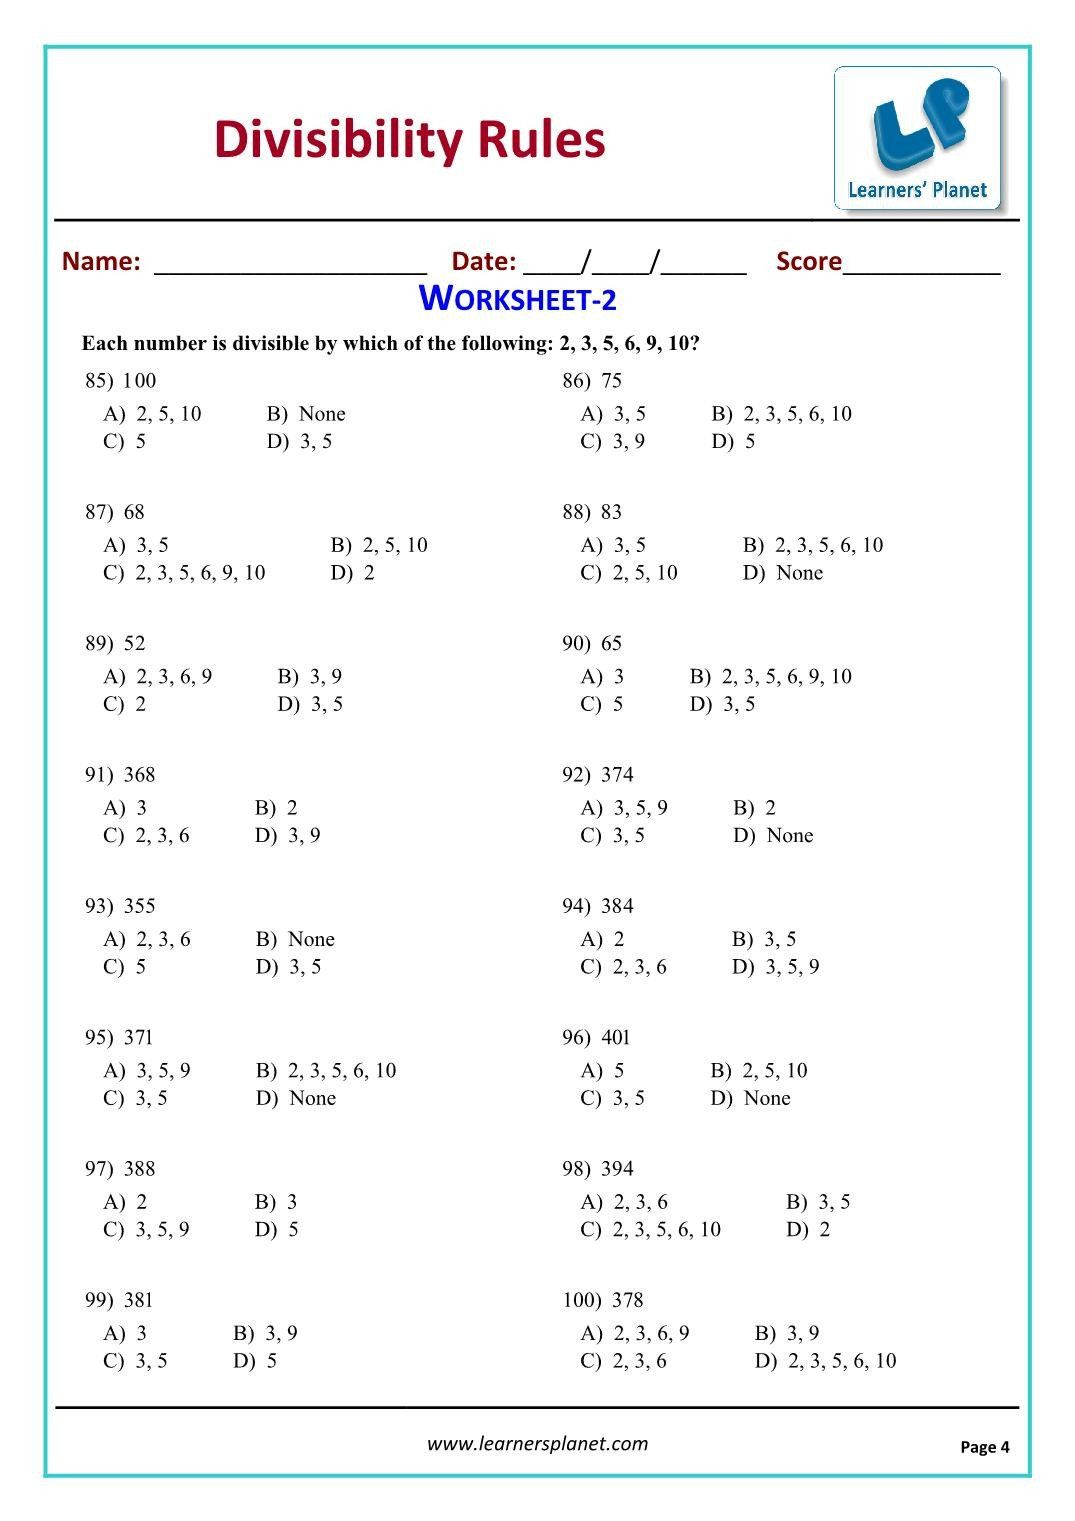 Divisibility Rules Worksheet Answers Grade 5 Math Mon